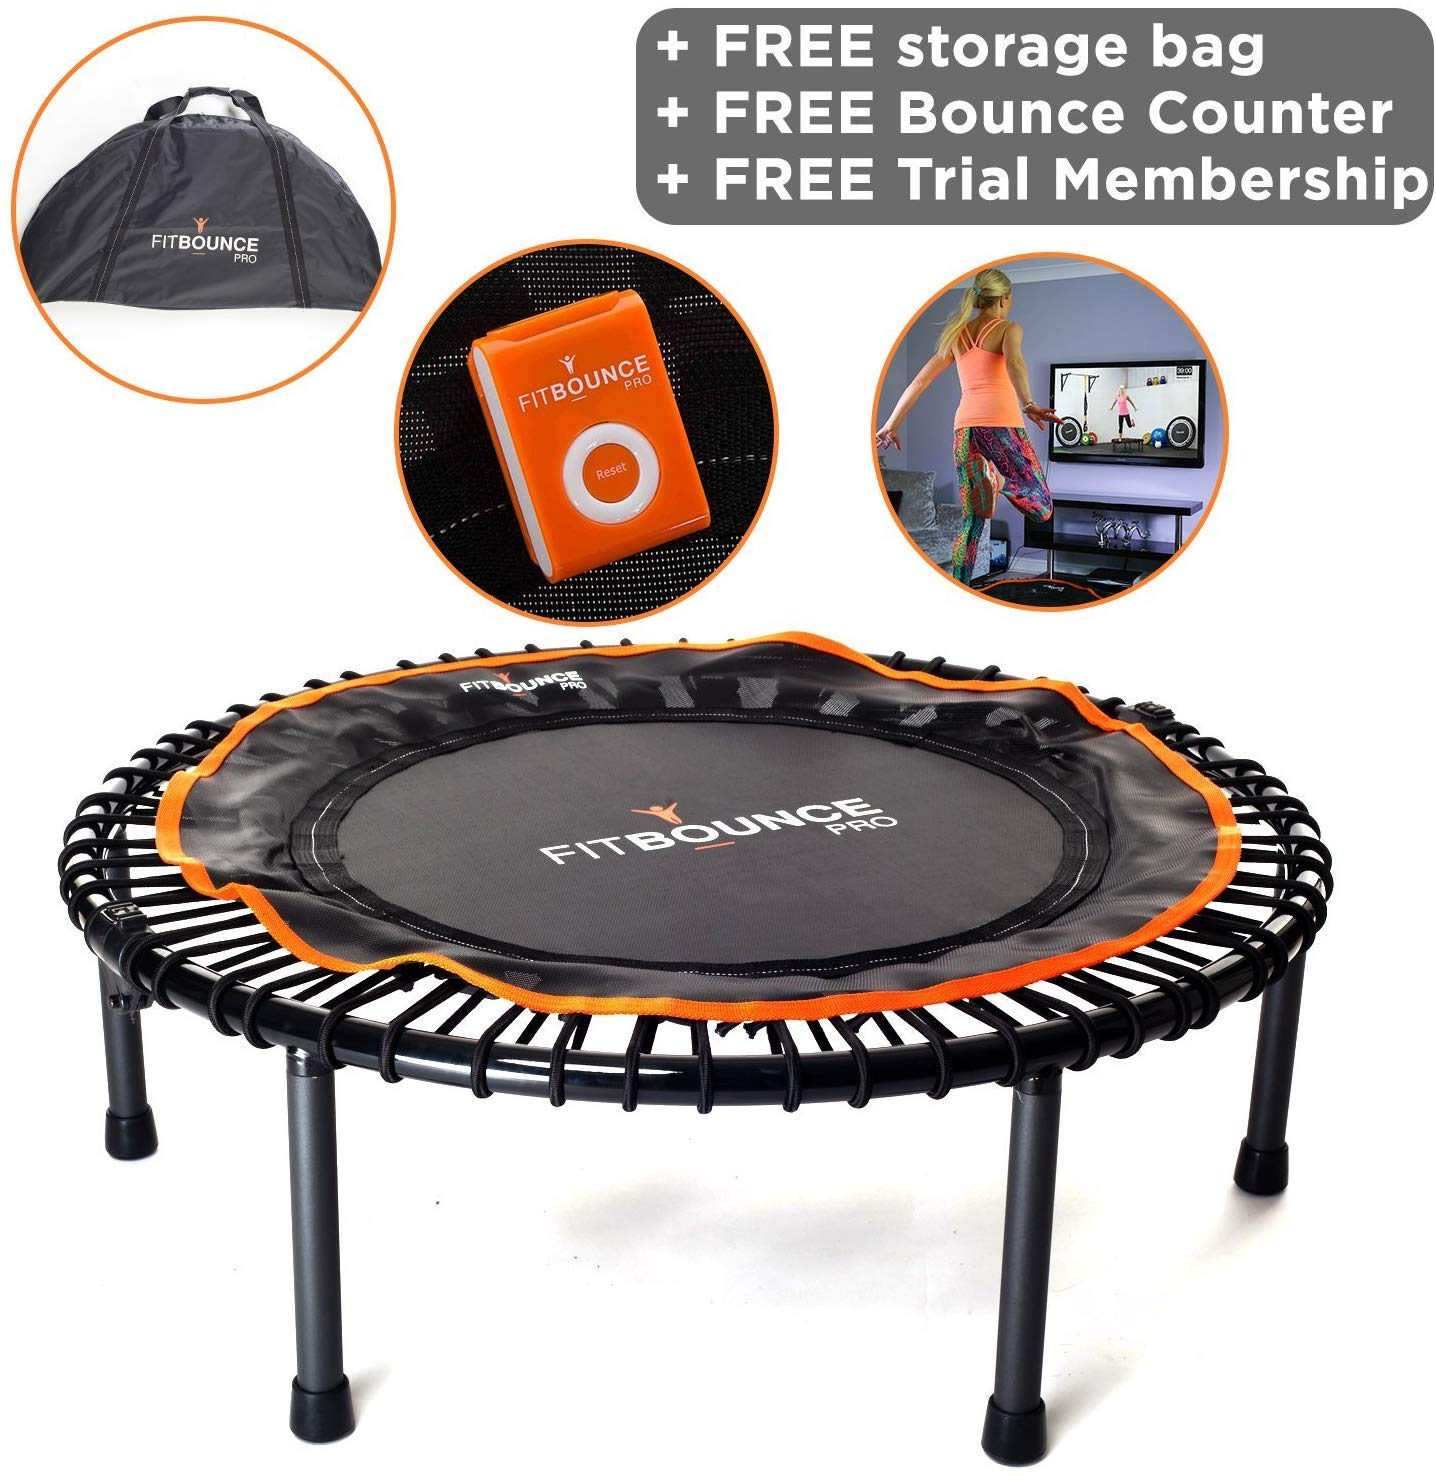 FIT BOUNCE PRO II – Top Seller | Best Exercise Trampolines